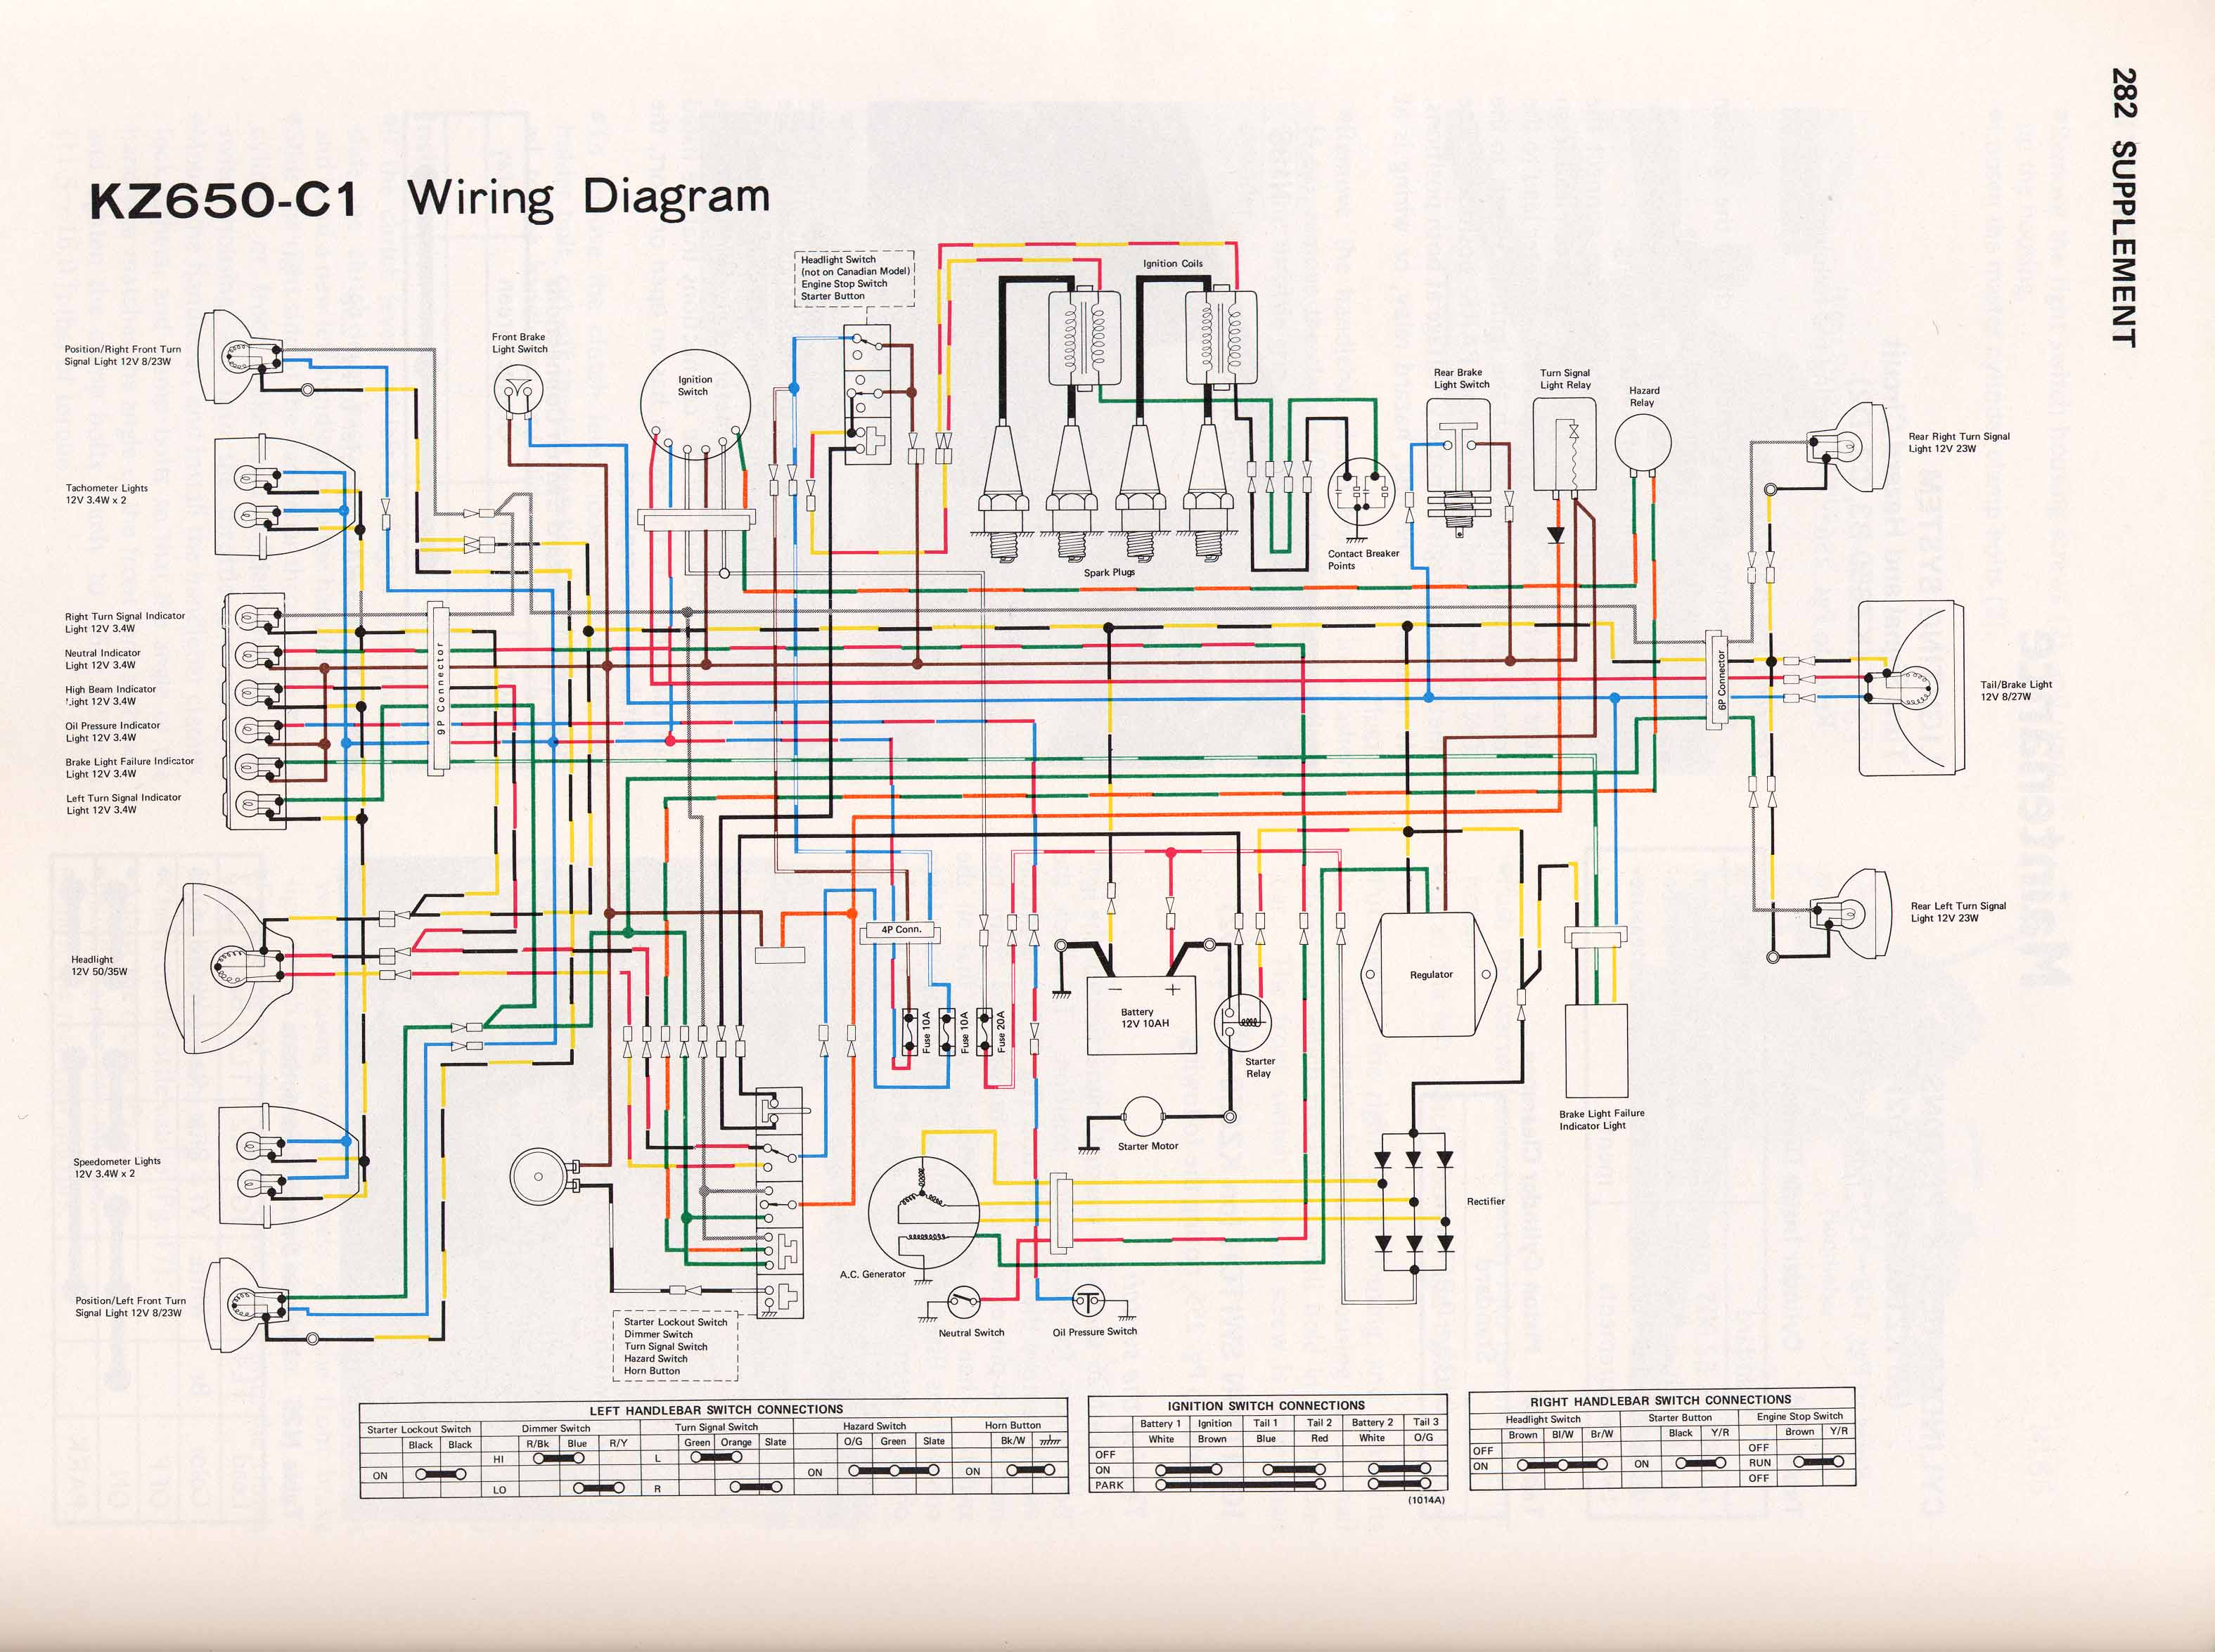 1977 Kz650 Wiring Diagram Daily Update Ruud Zephyr Kawasaki Kz1000 Ltd Get Free Image About Harness